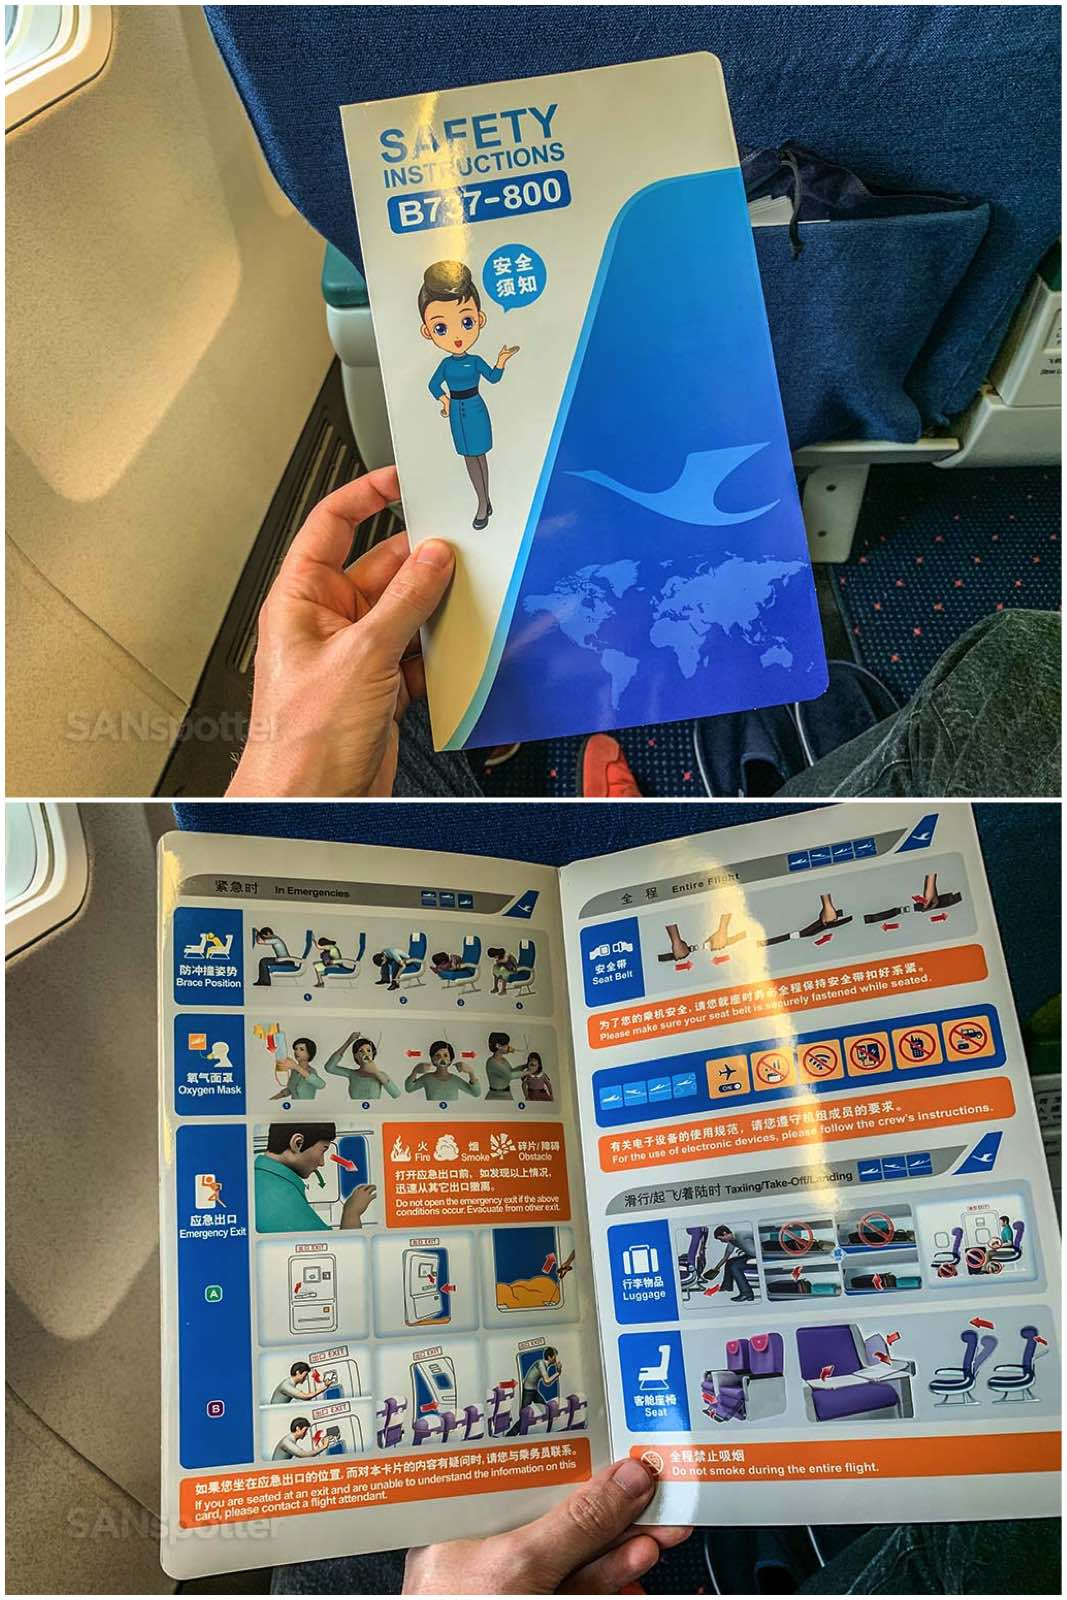 Xiamen Airlines 737-800 safety card